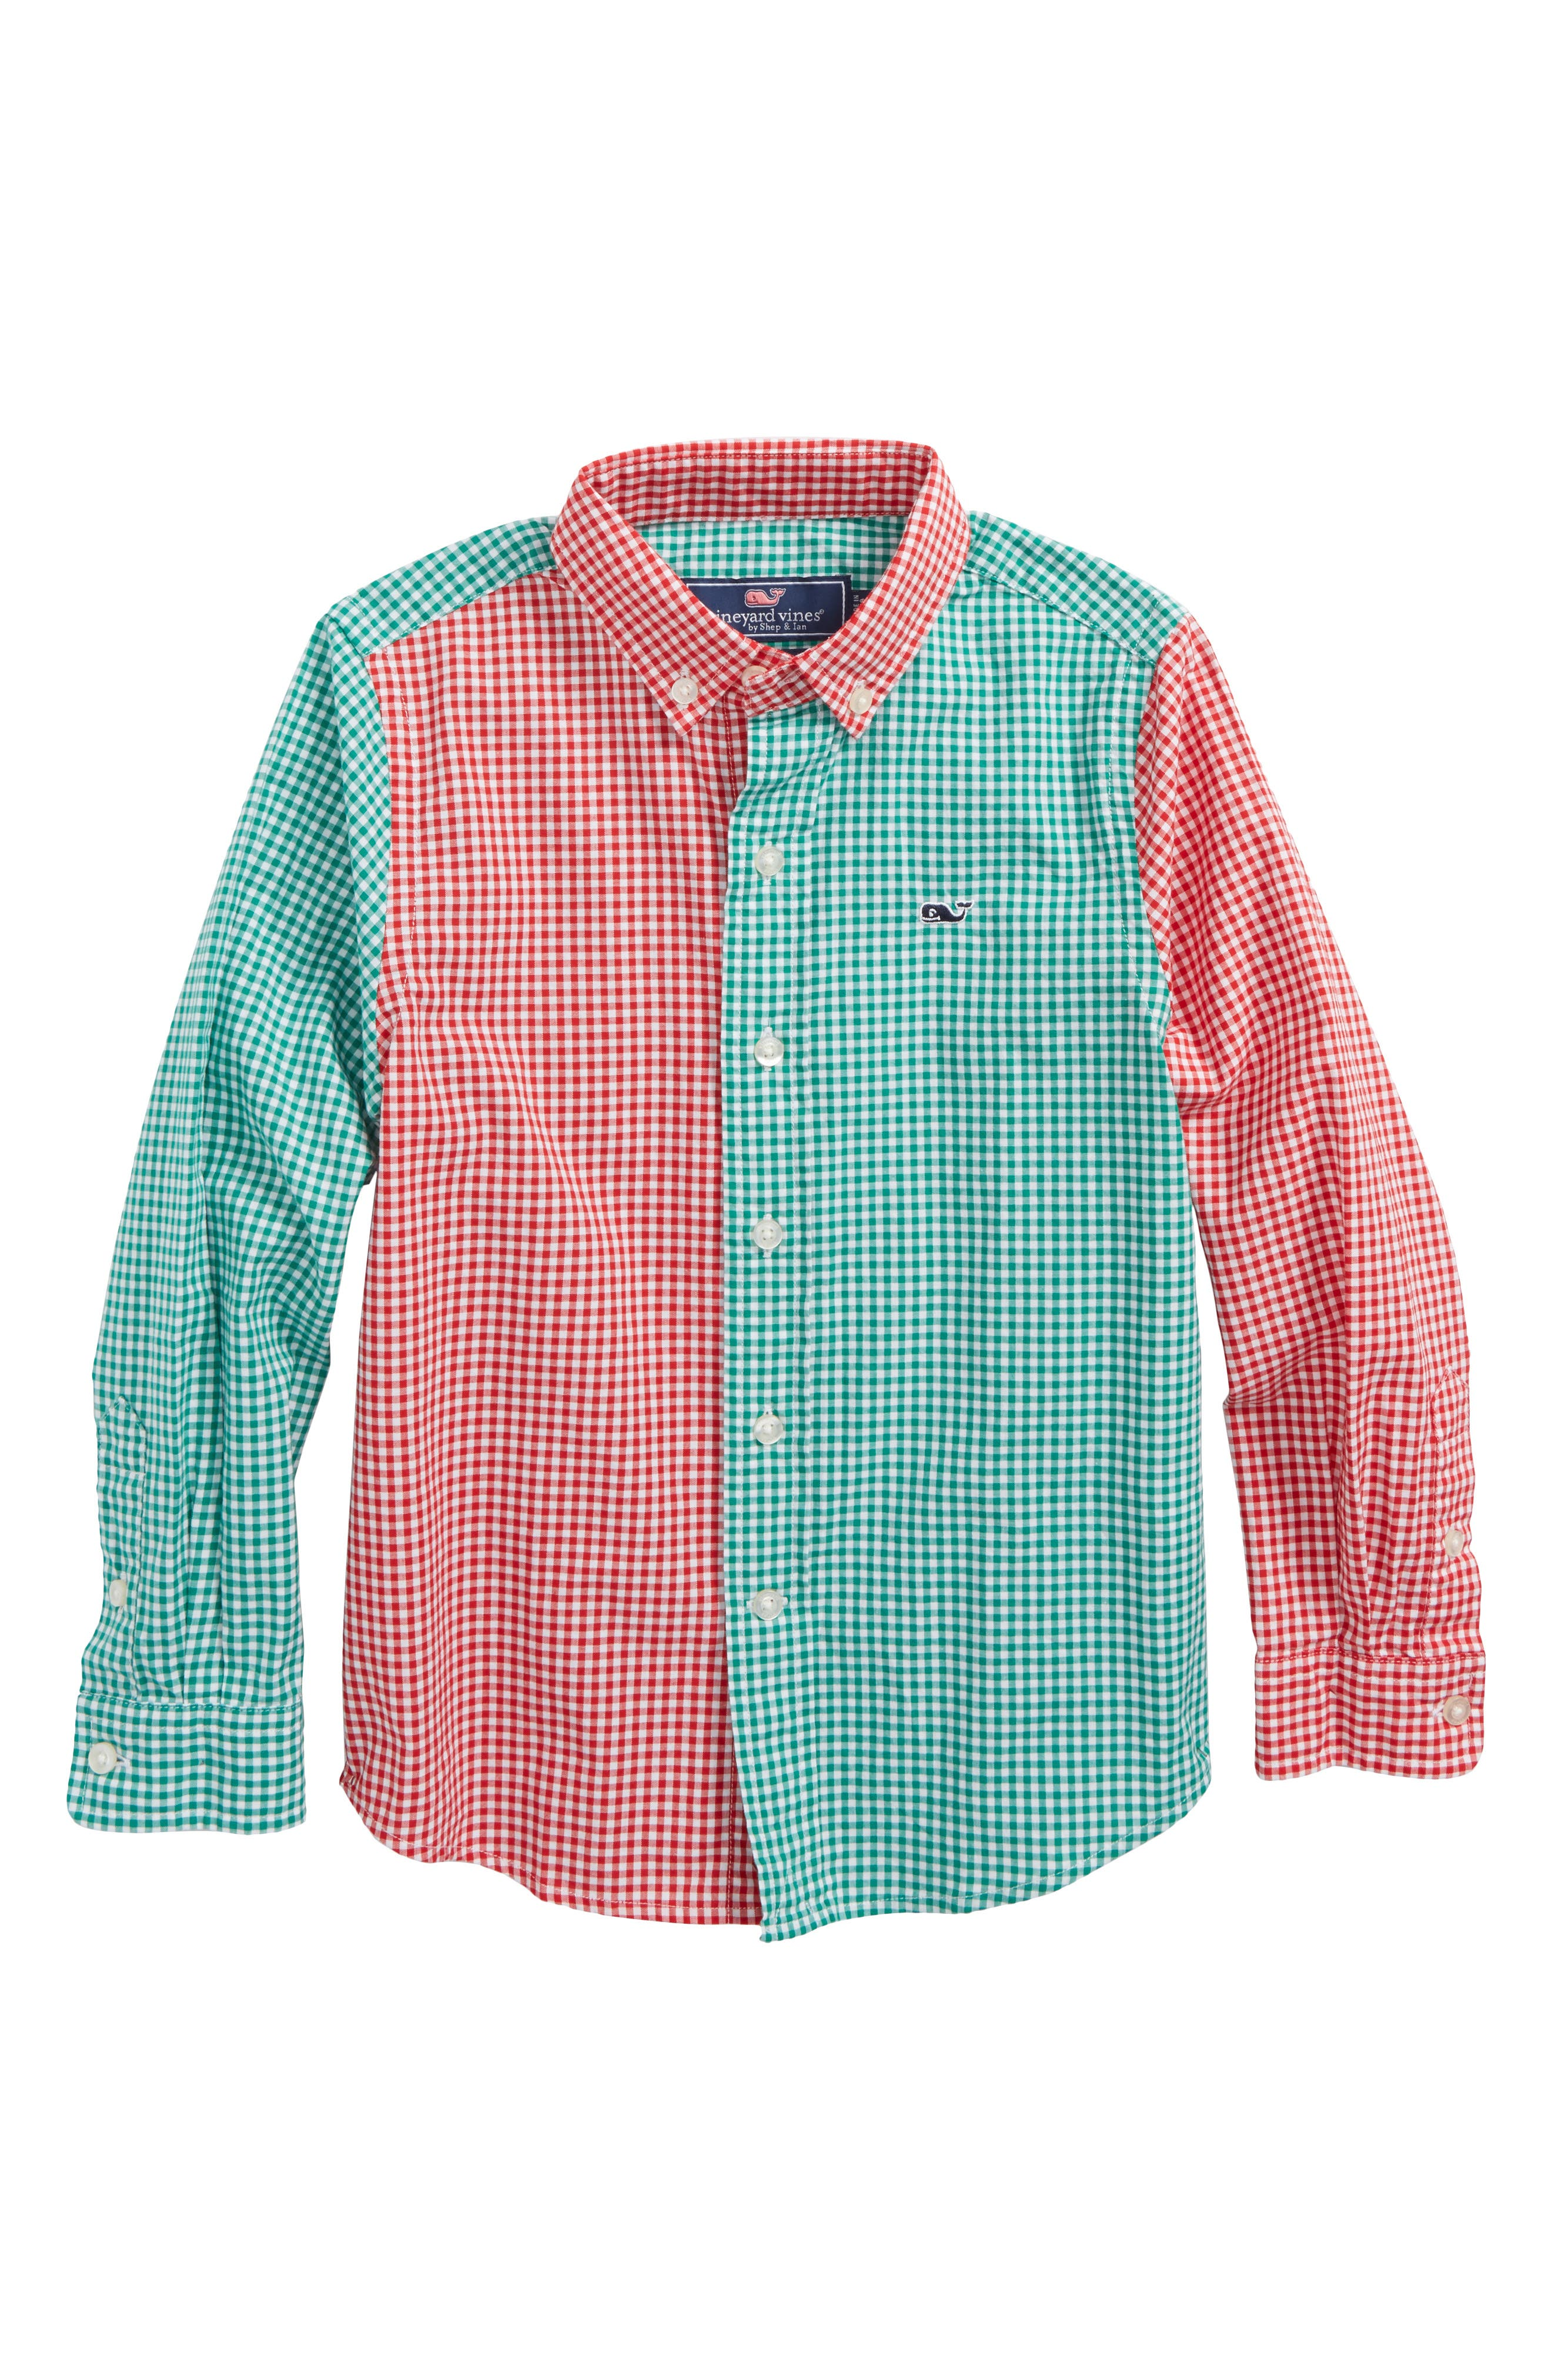 Alternate Image 1 Selected - vineyard vines Party Gingham Plaid Shirt (Big Boys)